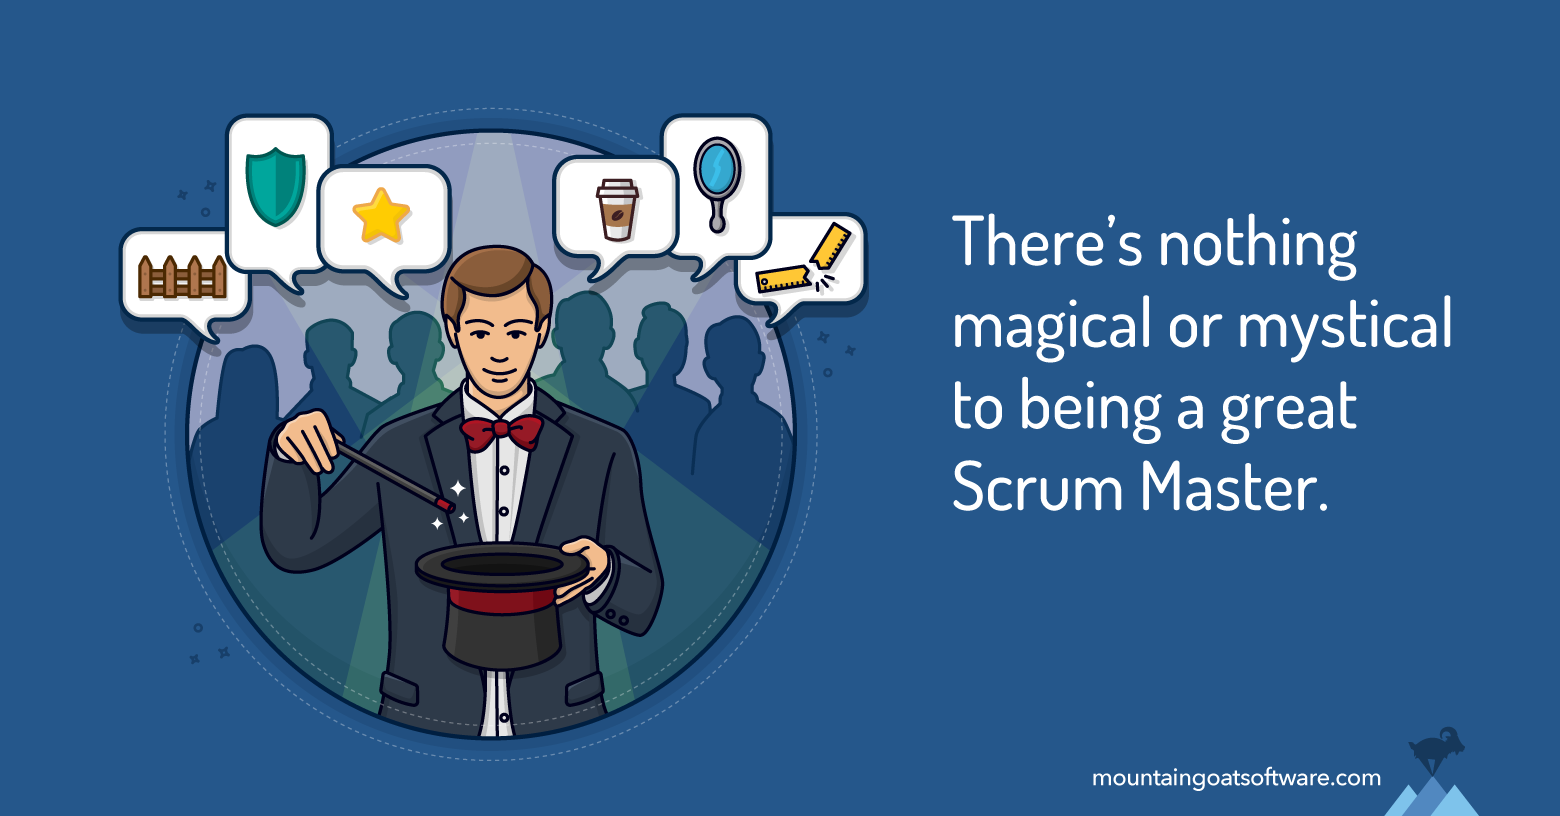 Six Things Your Team Wants from You as Their Scrum Master